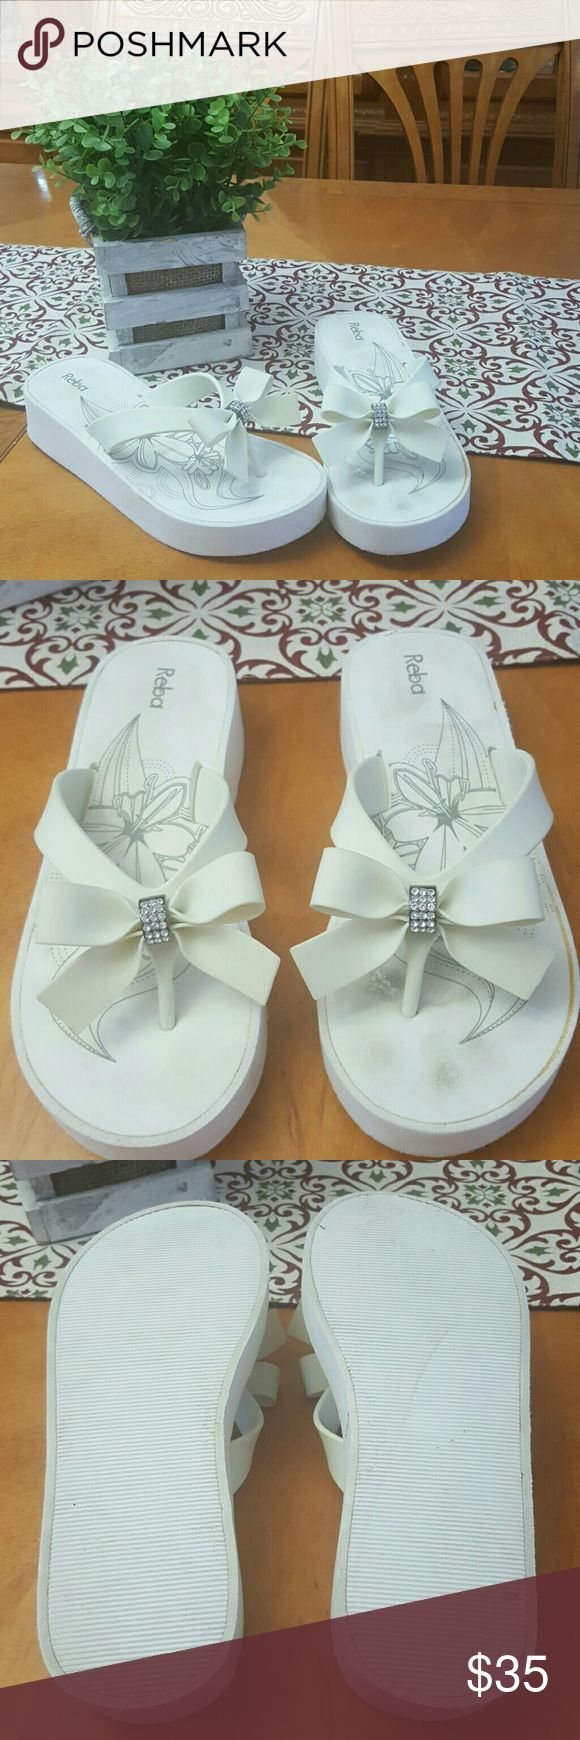 Reba white wedge rhinestone bow flip flops These were my comfy wedding flip flops. A little dirty and it looks like the glue on the sole has discolored but they can be cleaned. Super cute for wedding day! Reba Shoes Sandals